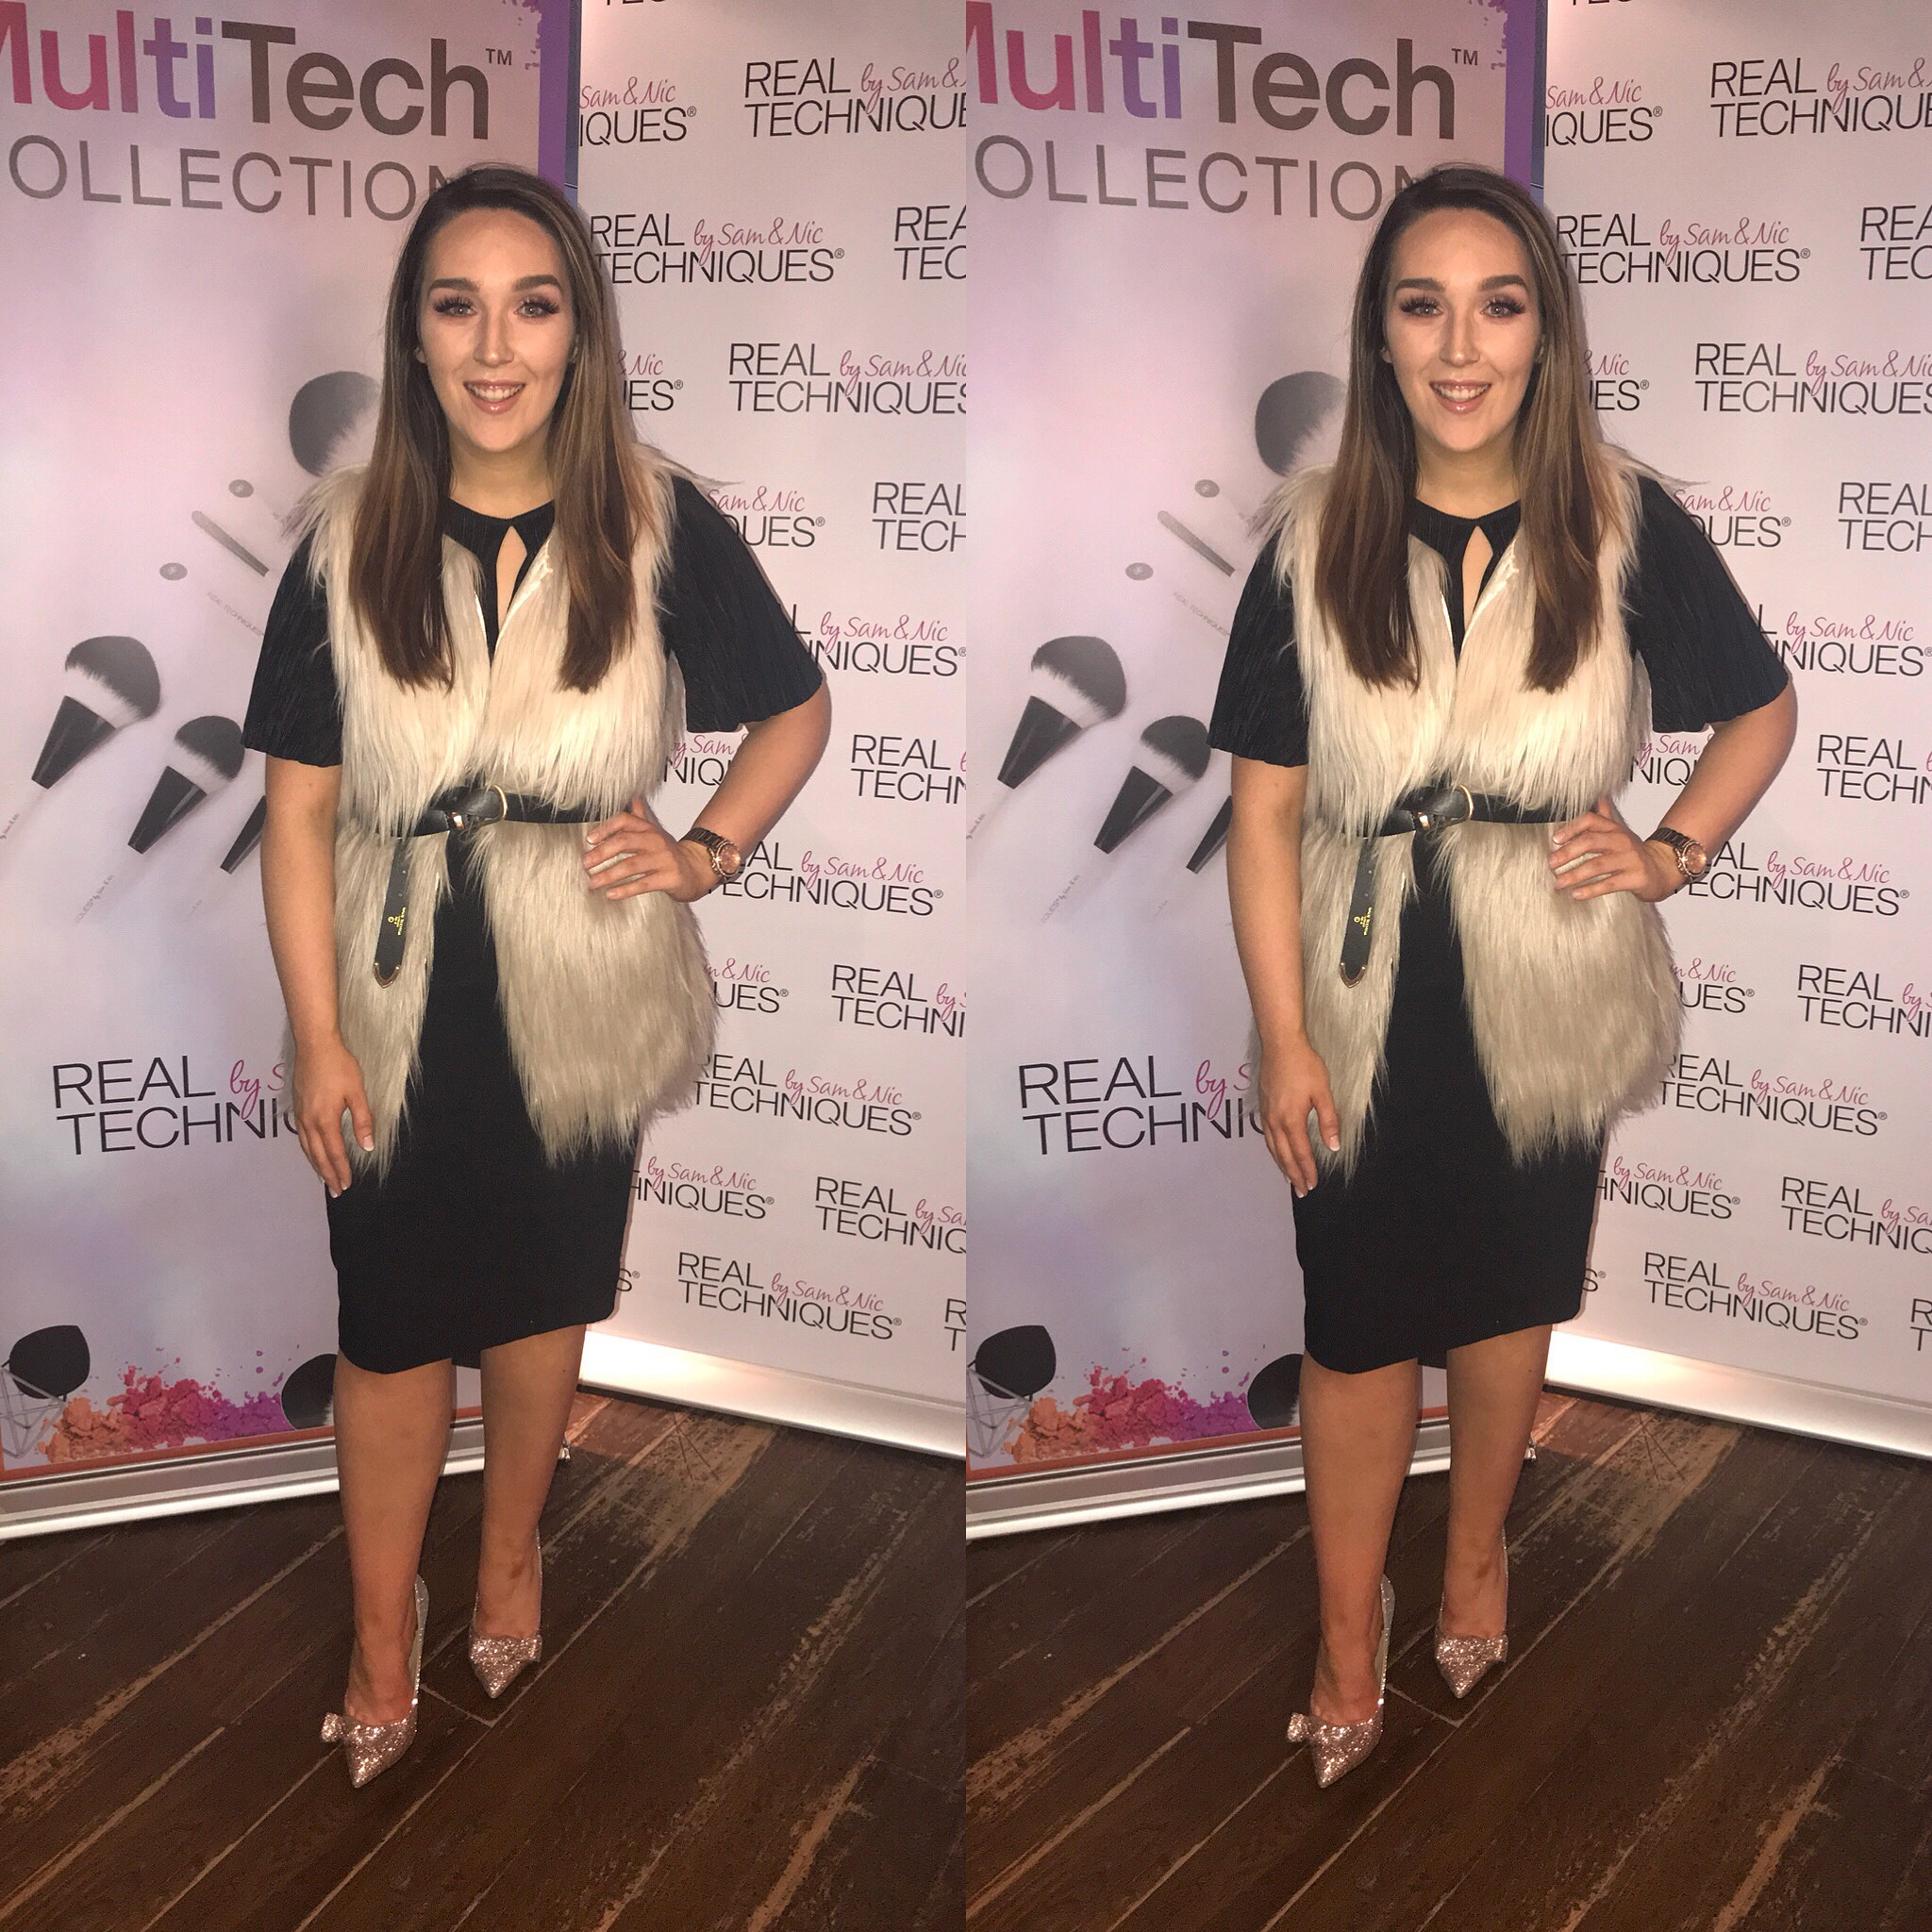 Real Techniques MultiTech Launch What I Wore